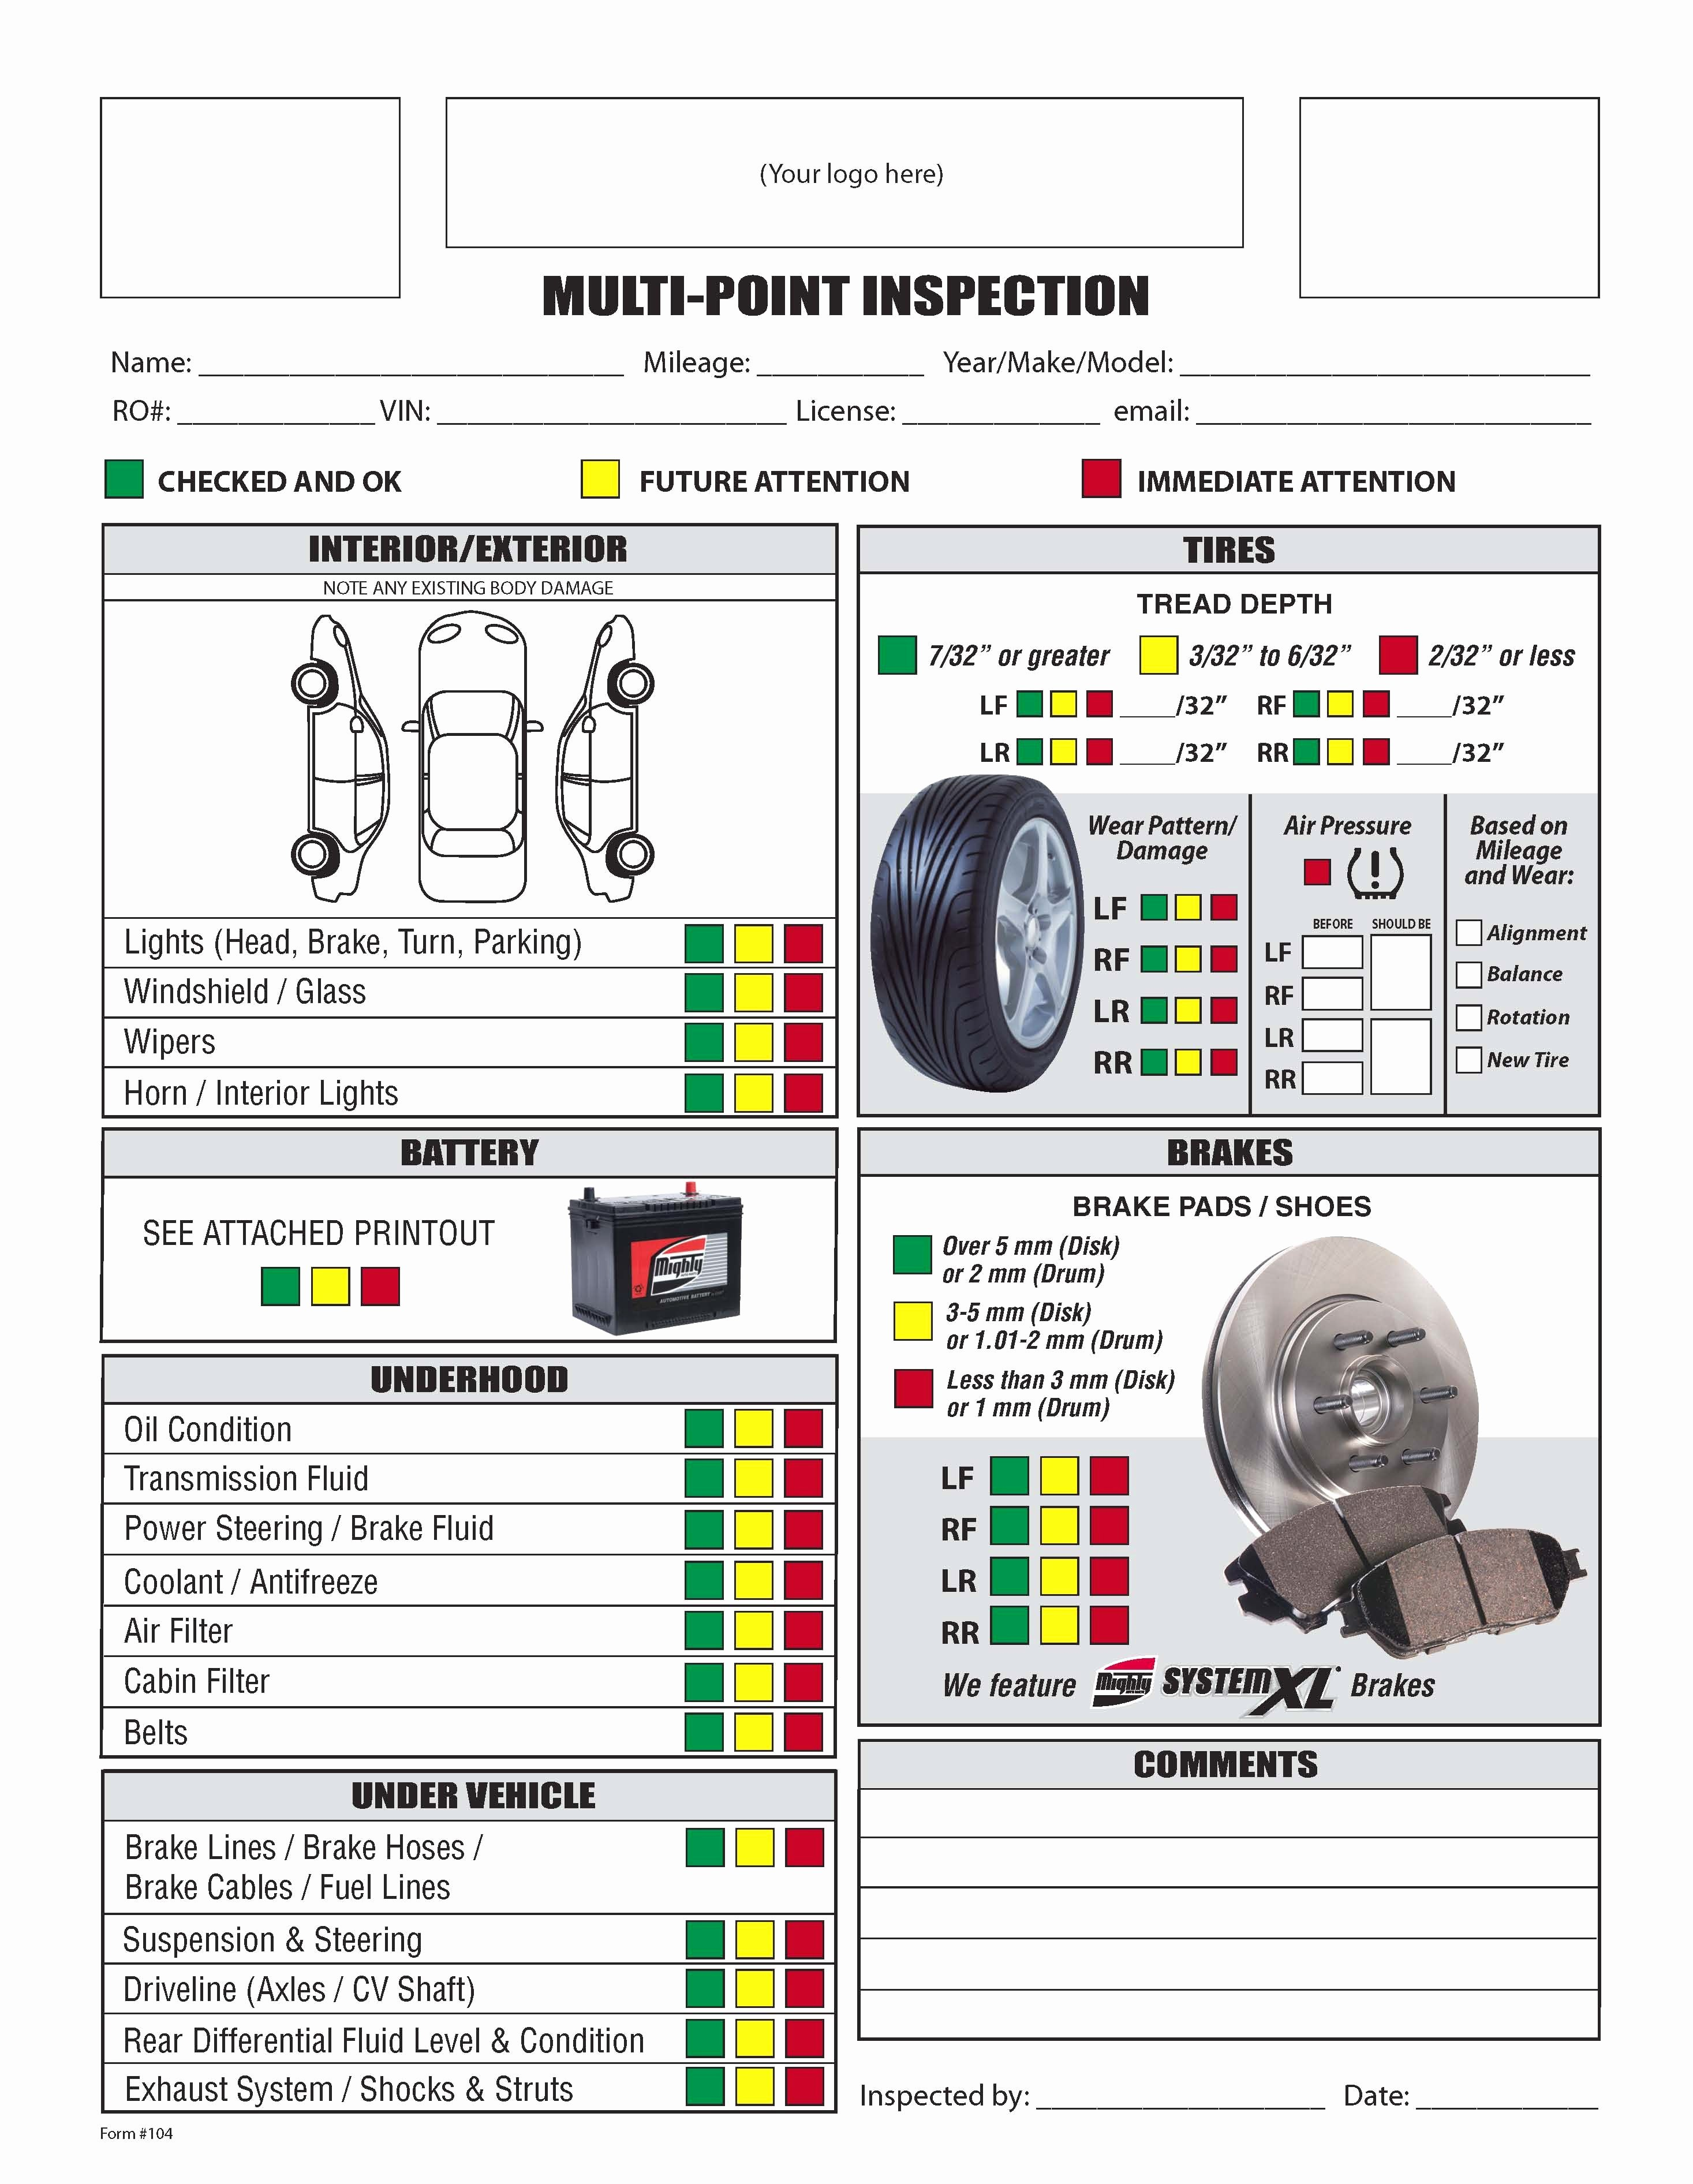 Auto Repair Checklist Template Elegant Image Result for Vehicle Parts Checklist